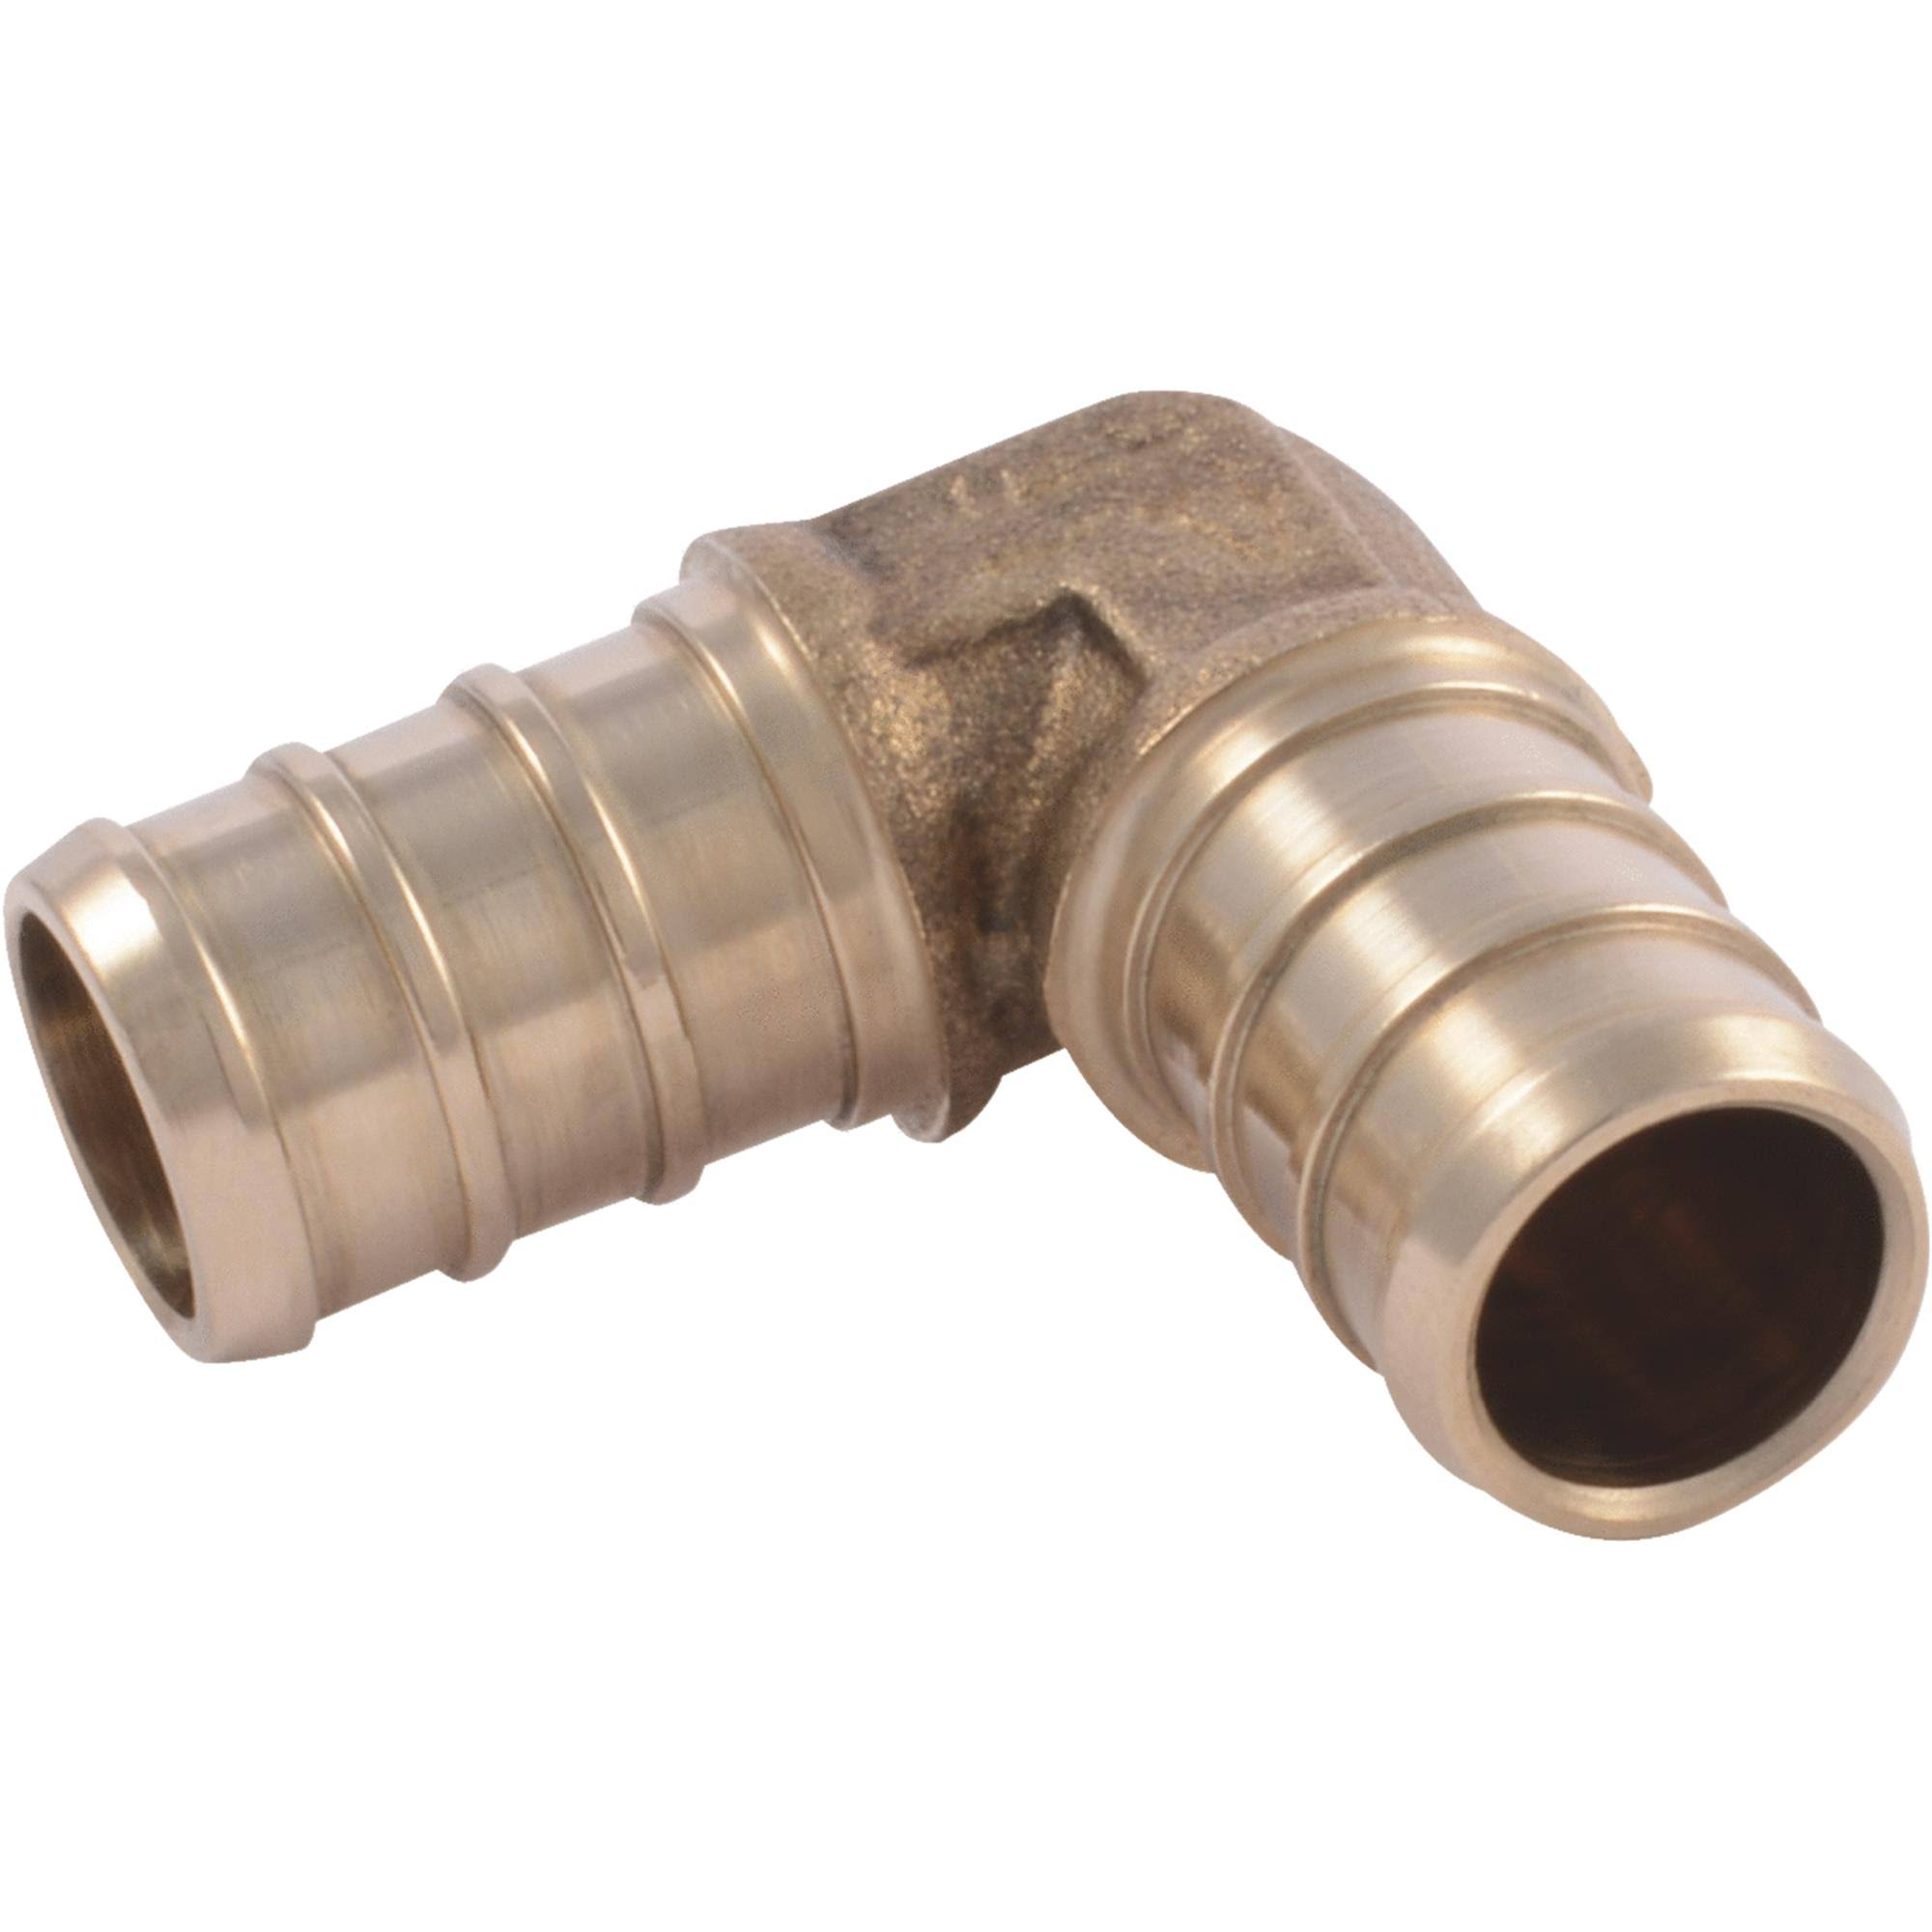 "SharkBite Brass PEX 90 Degree Barb Elbow - 1/2"" x 1/2"""